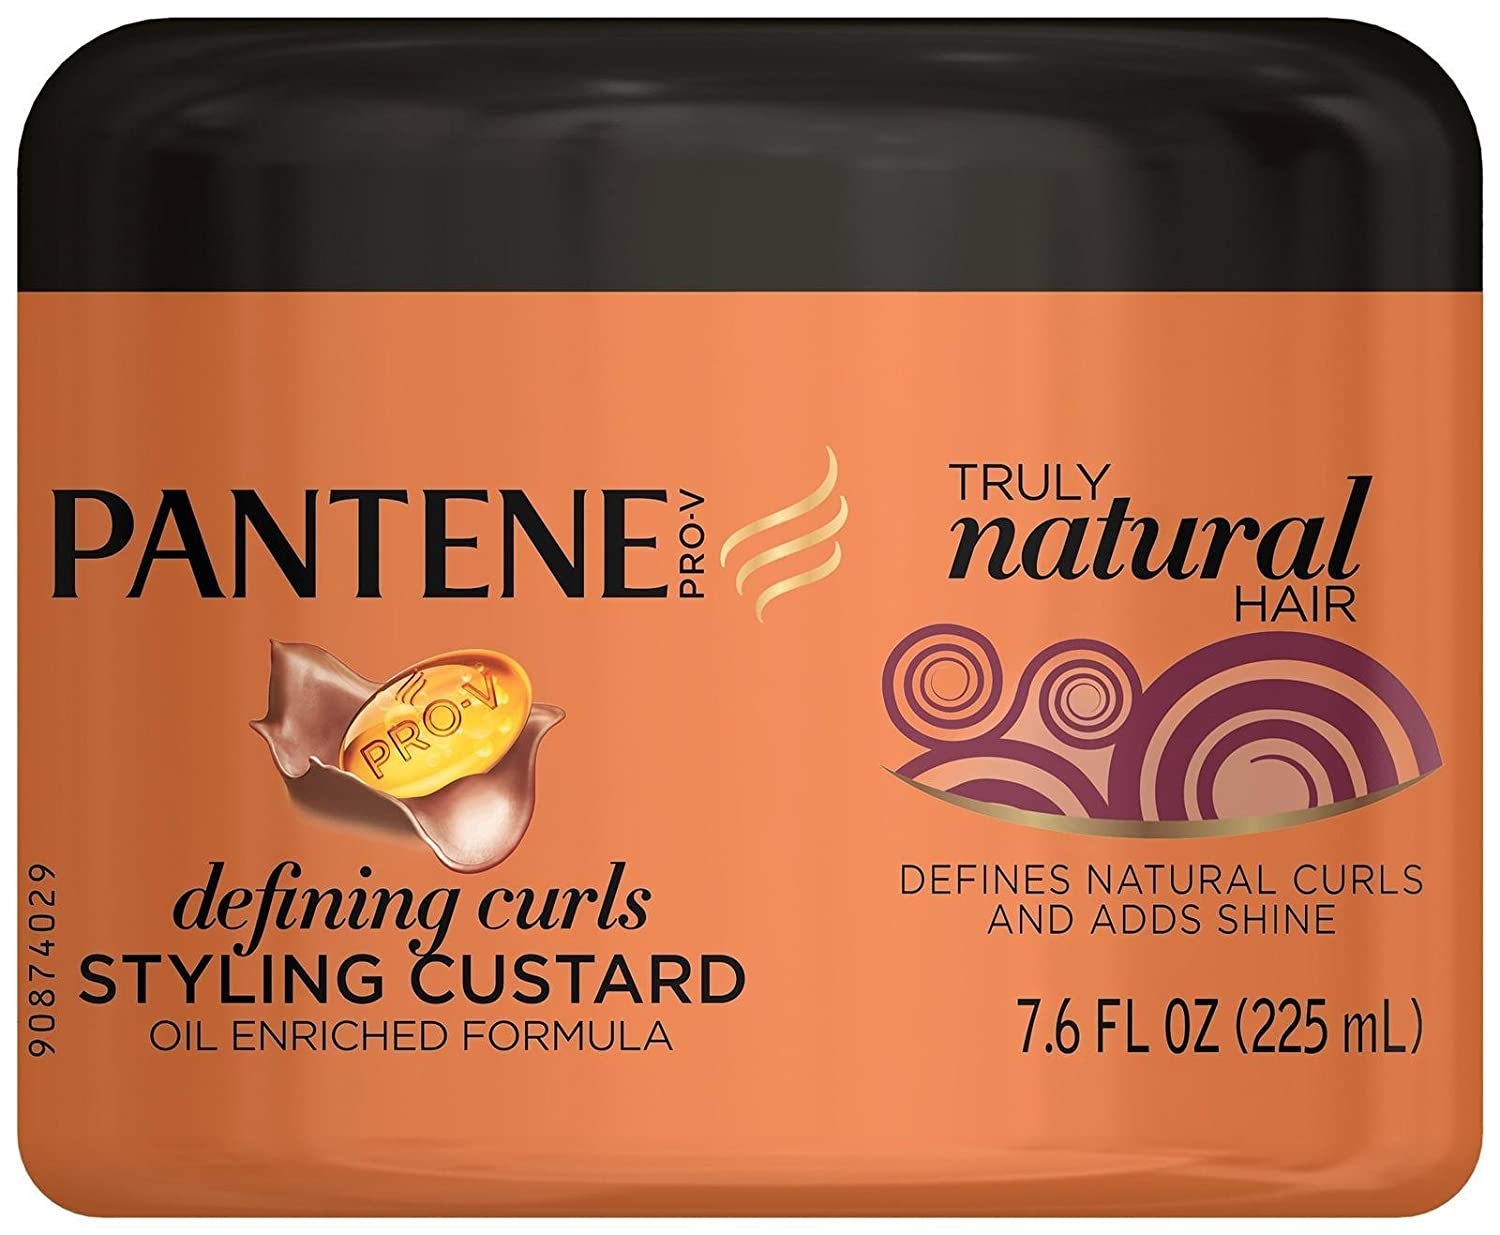 Pantene Pro V Truly Natural Hair Defining Curls Styling Custard 7 6 Fl Oz Packaging May Vary Hair Shampoos Beauty Amazon Com